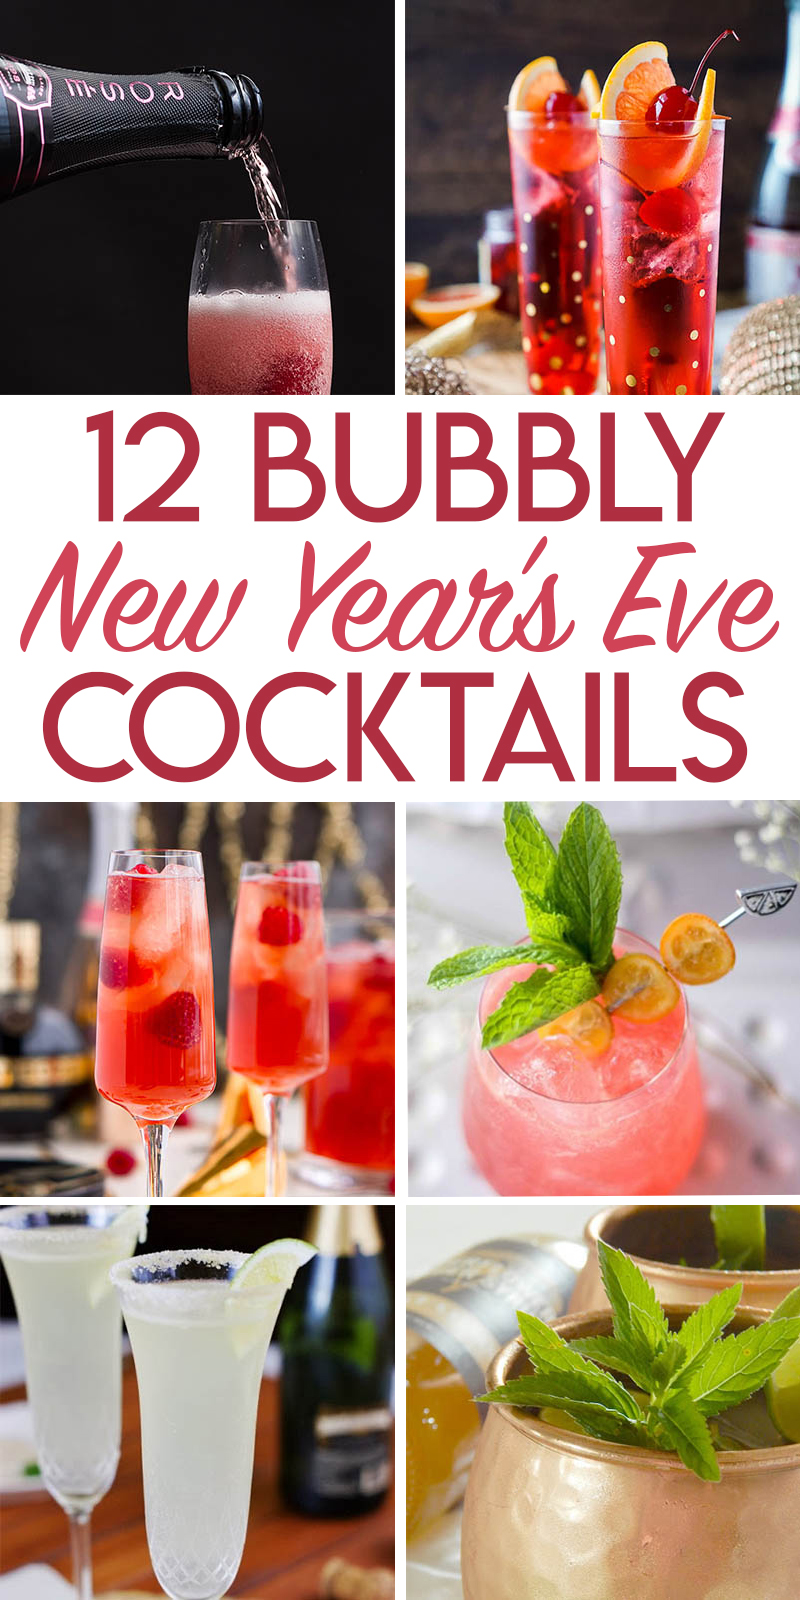 12 bubbly cocktail recipes for New Year's Eve